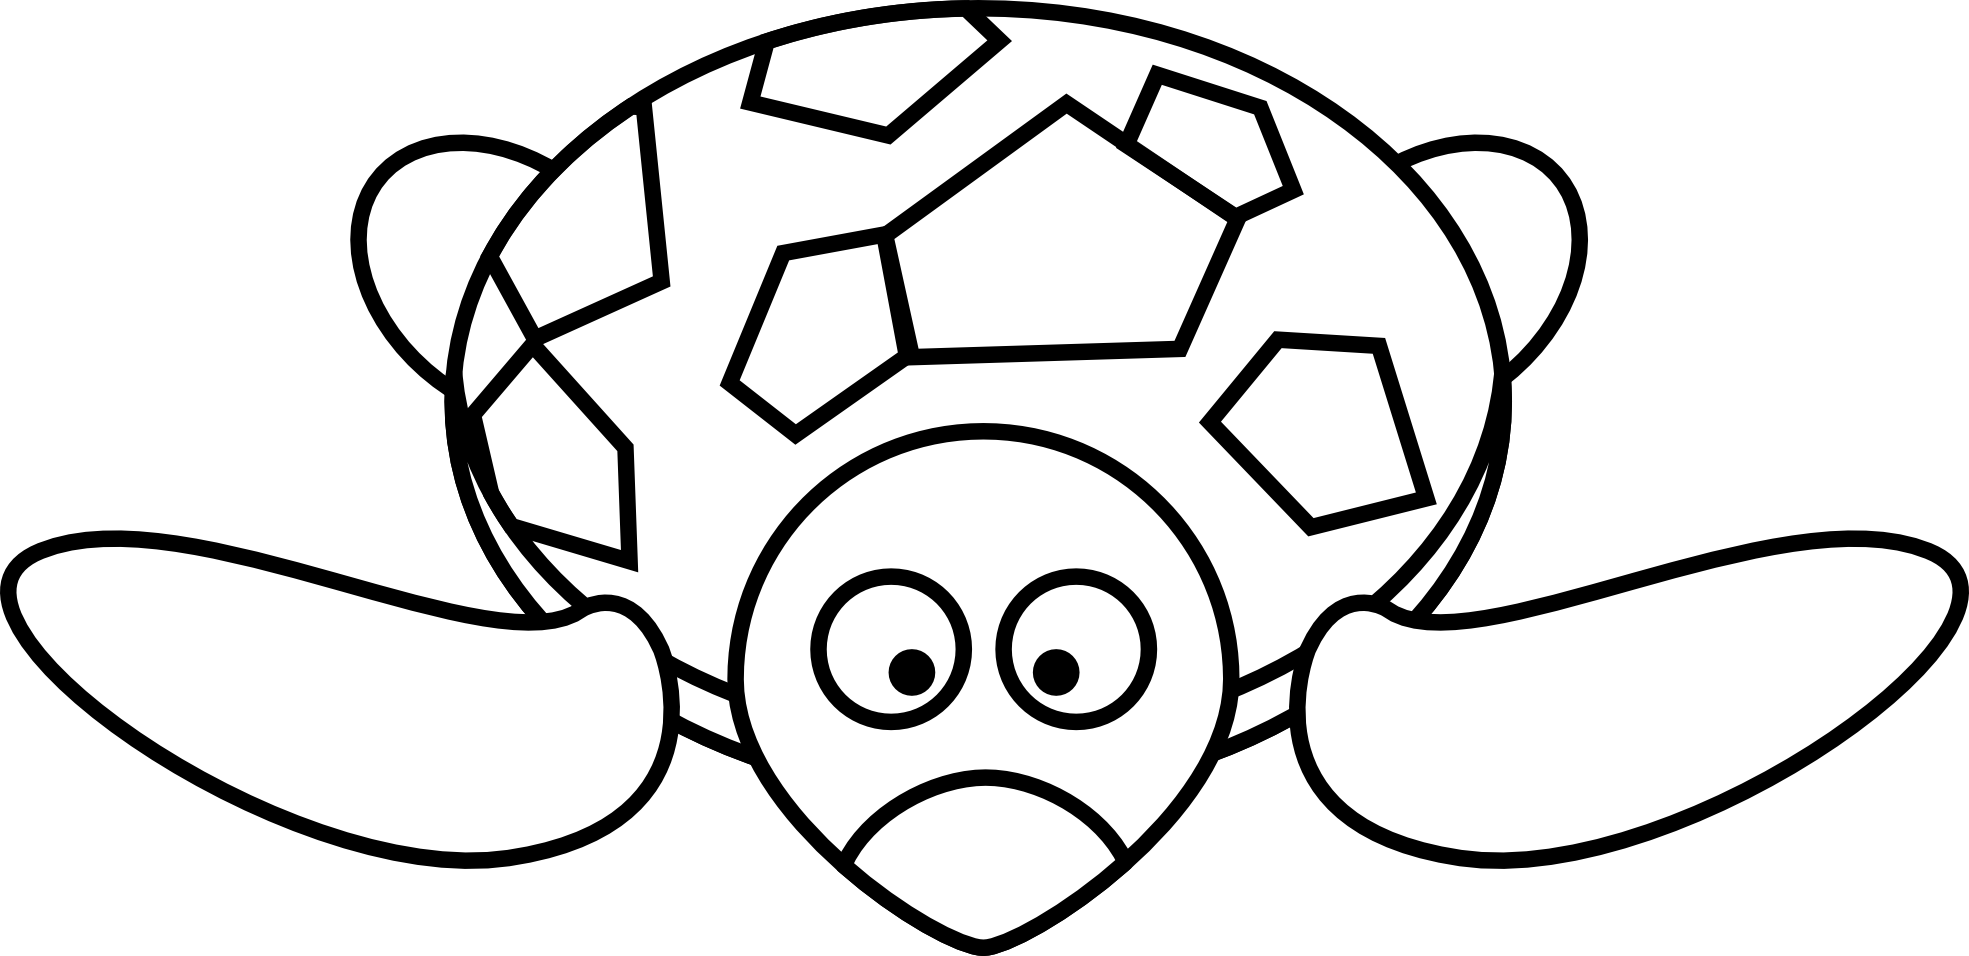 Line Art Comic : Tortoise clipart black and white panda free